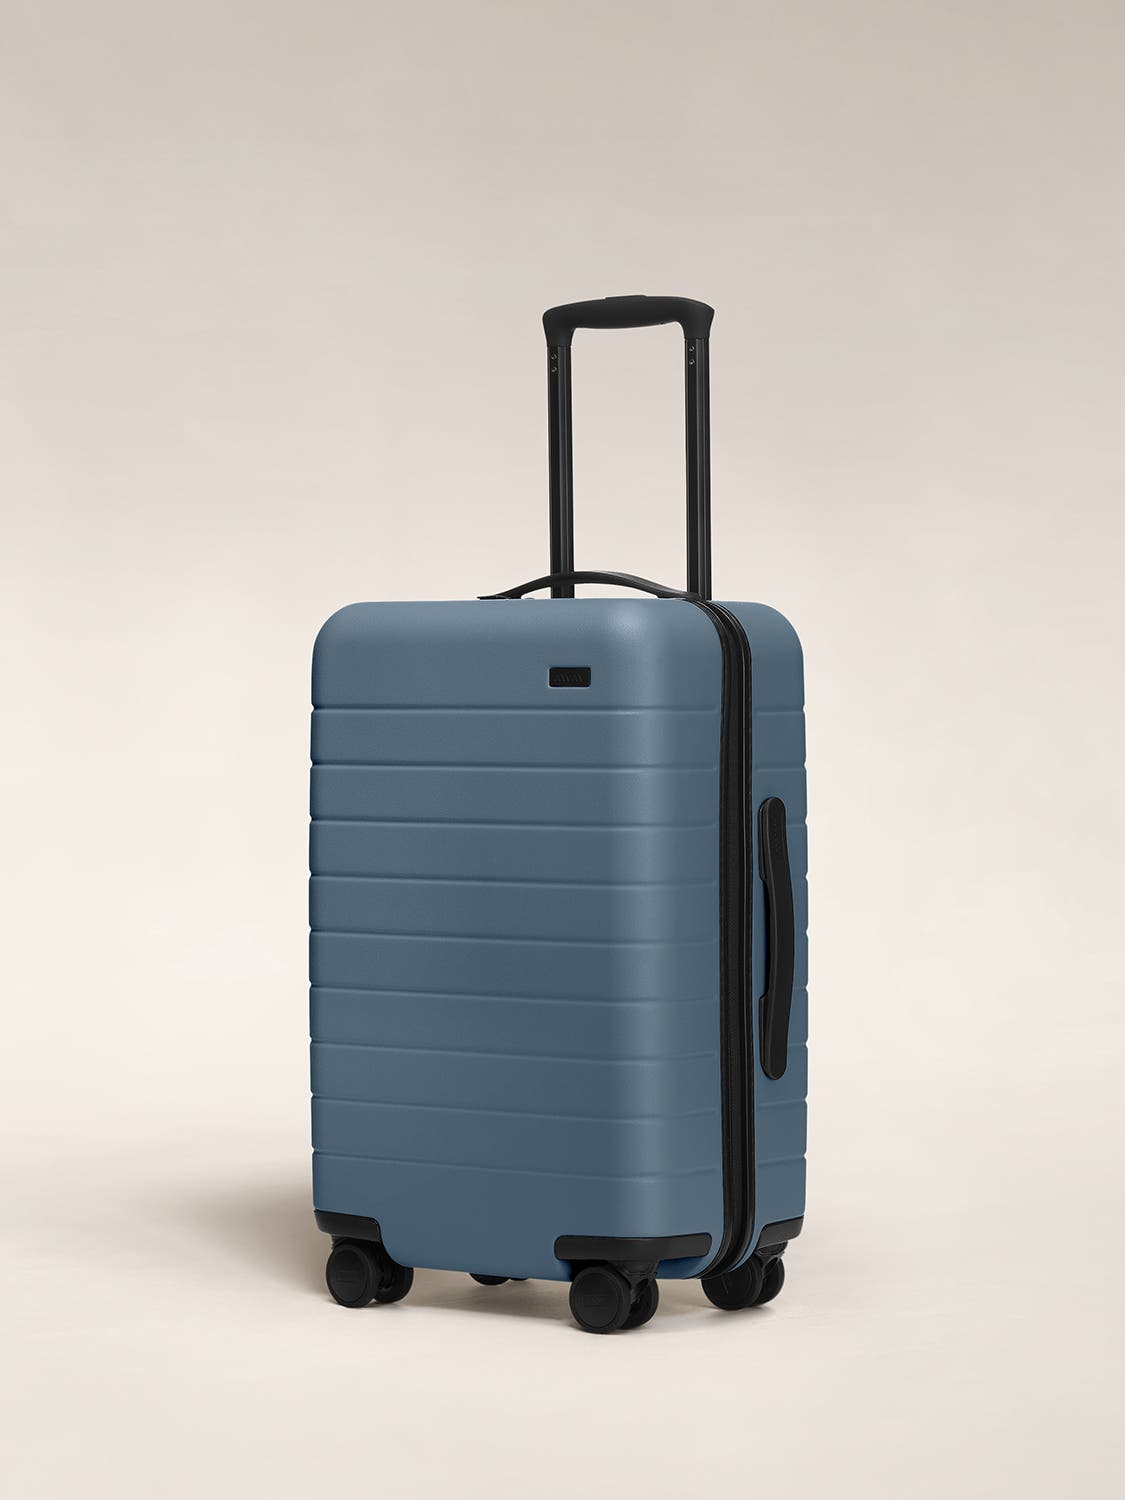 Coast blue carry-on hardside with raised telescopic handles shown at an angle.